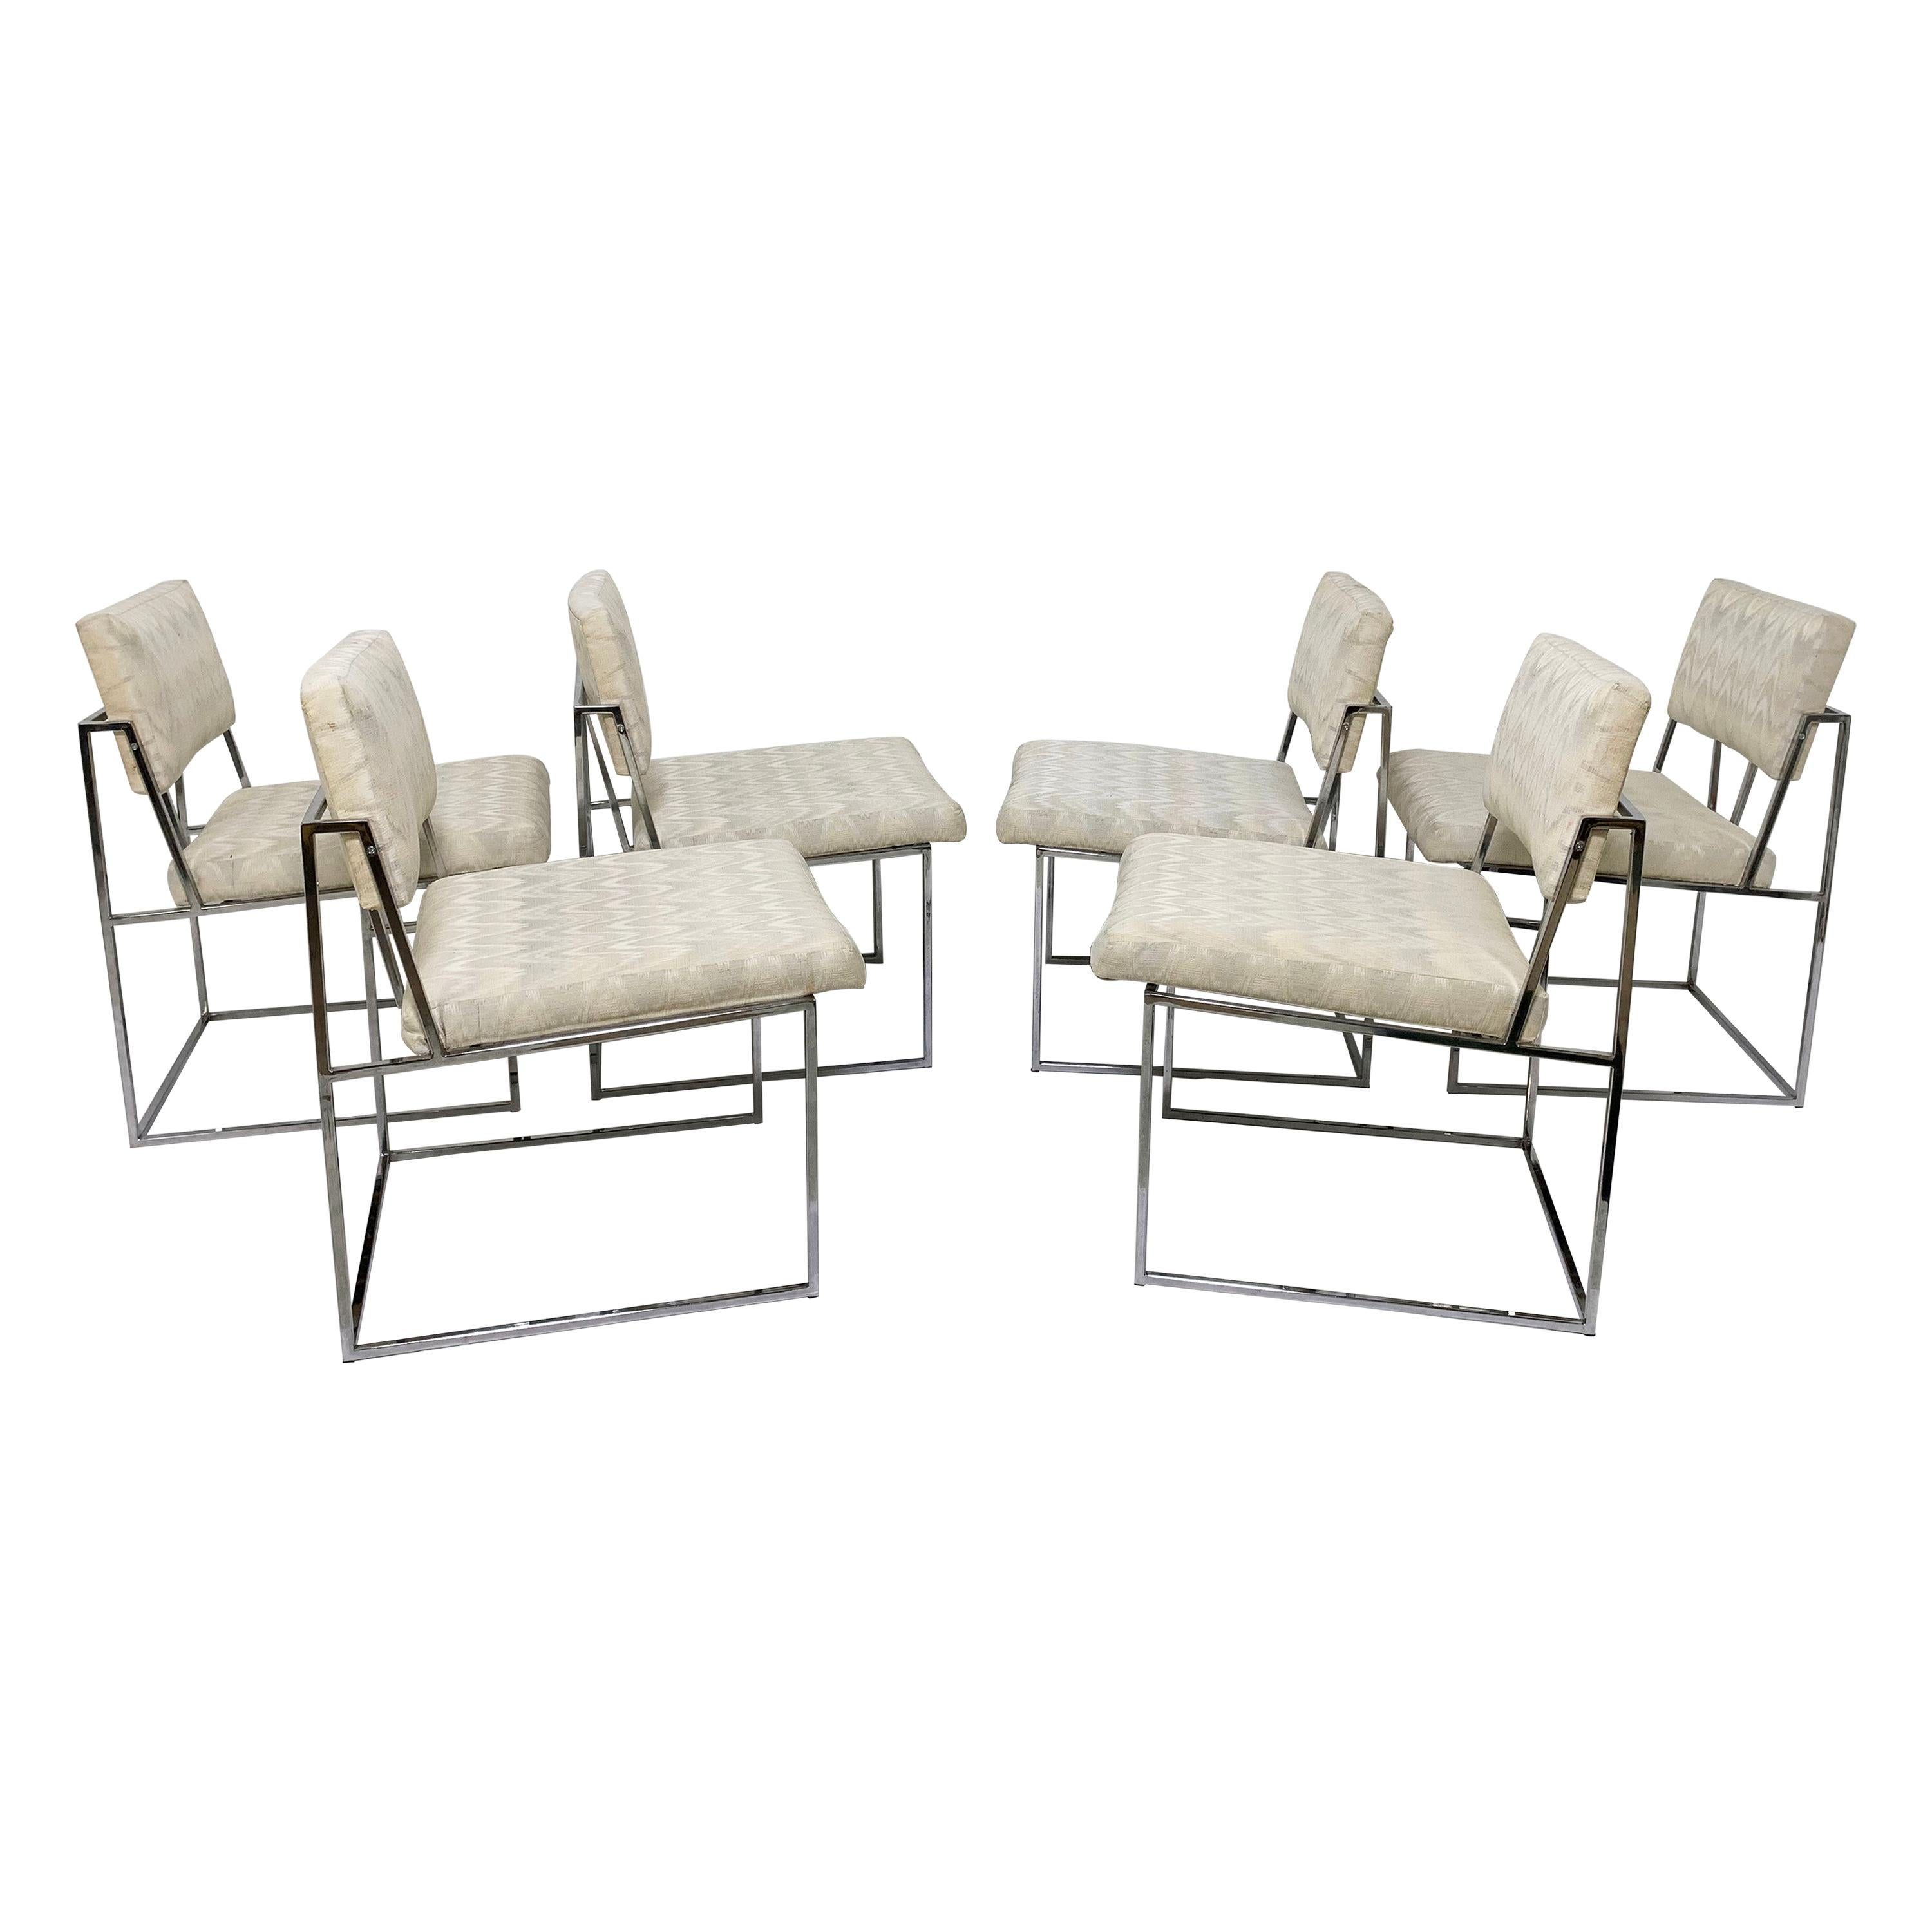 Set of Six Milo Baughman for Thayer Coggin Dining Chairs, circa 1960s